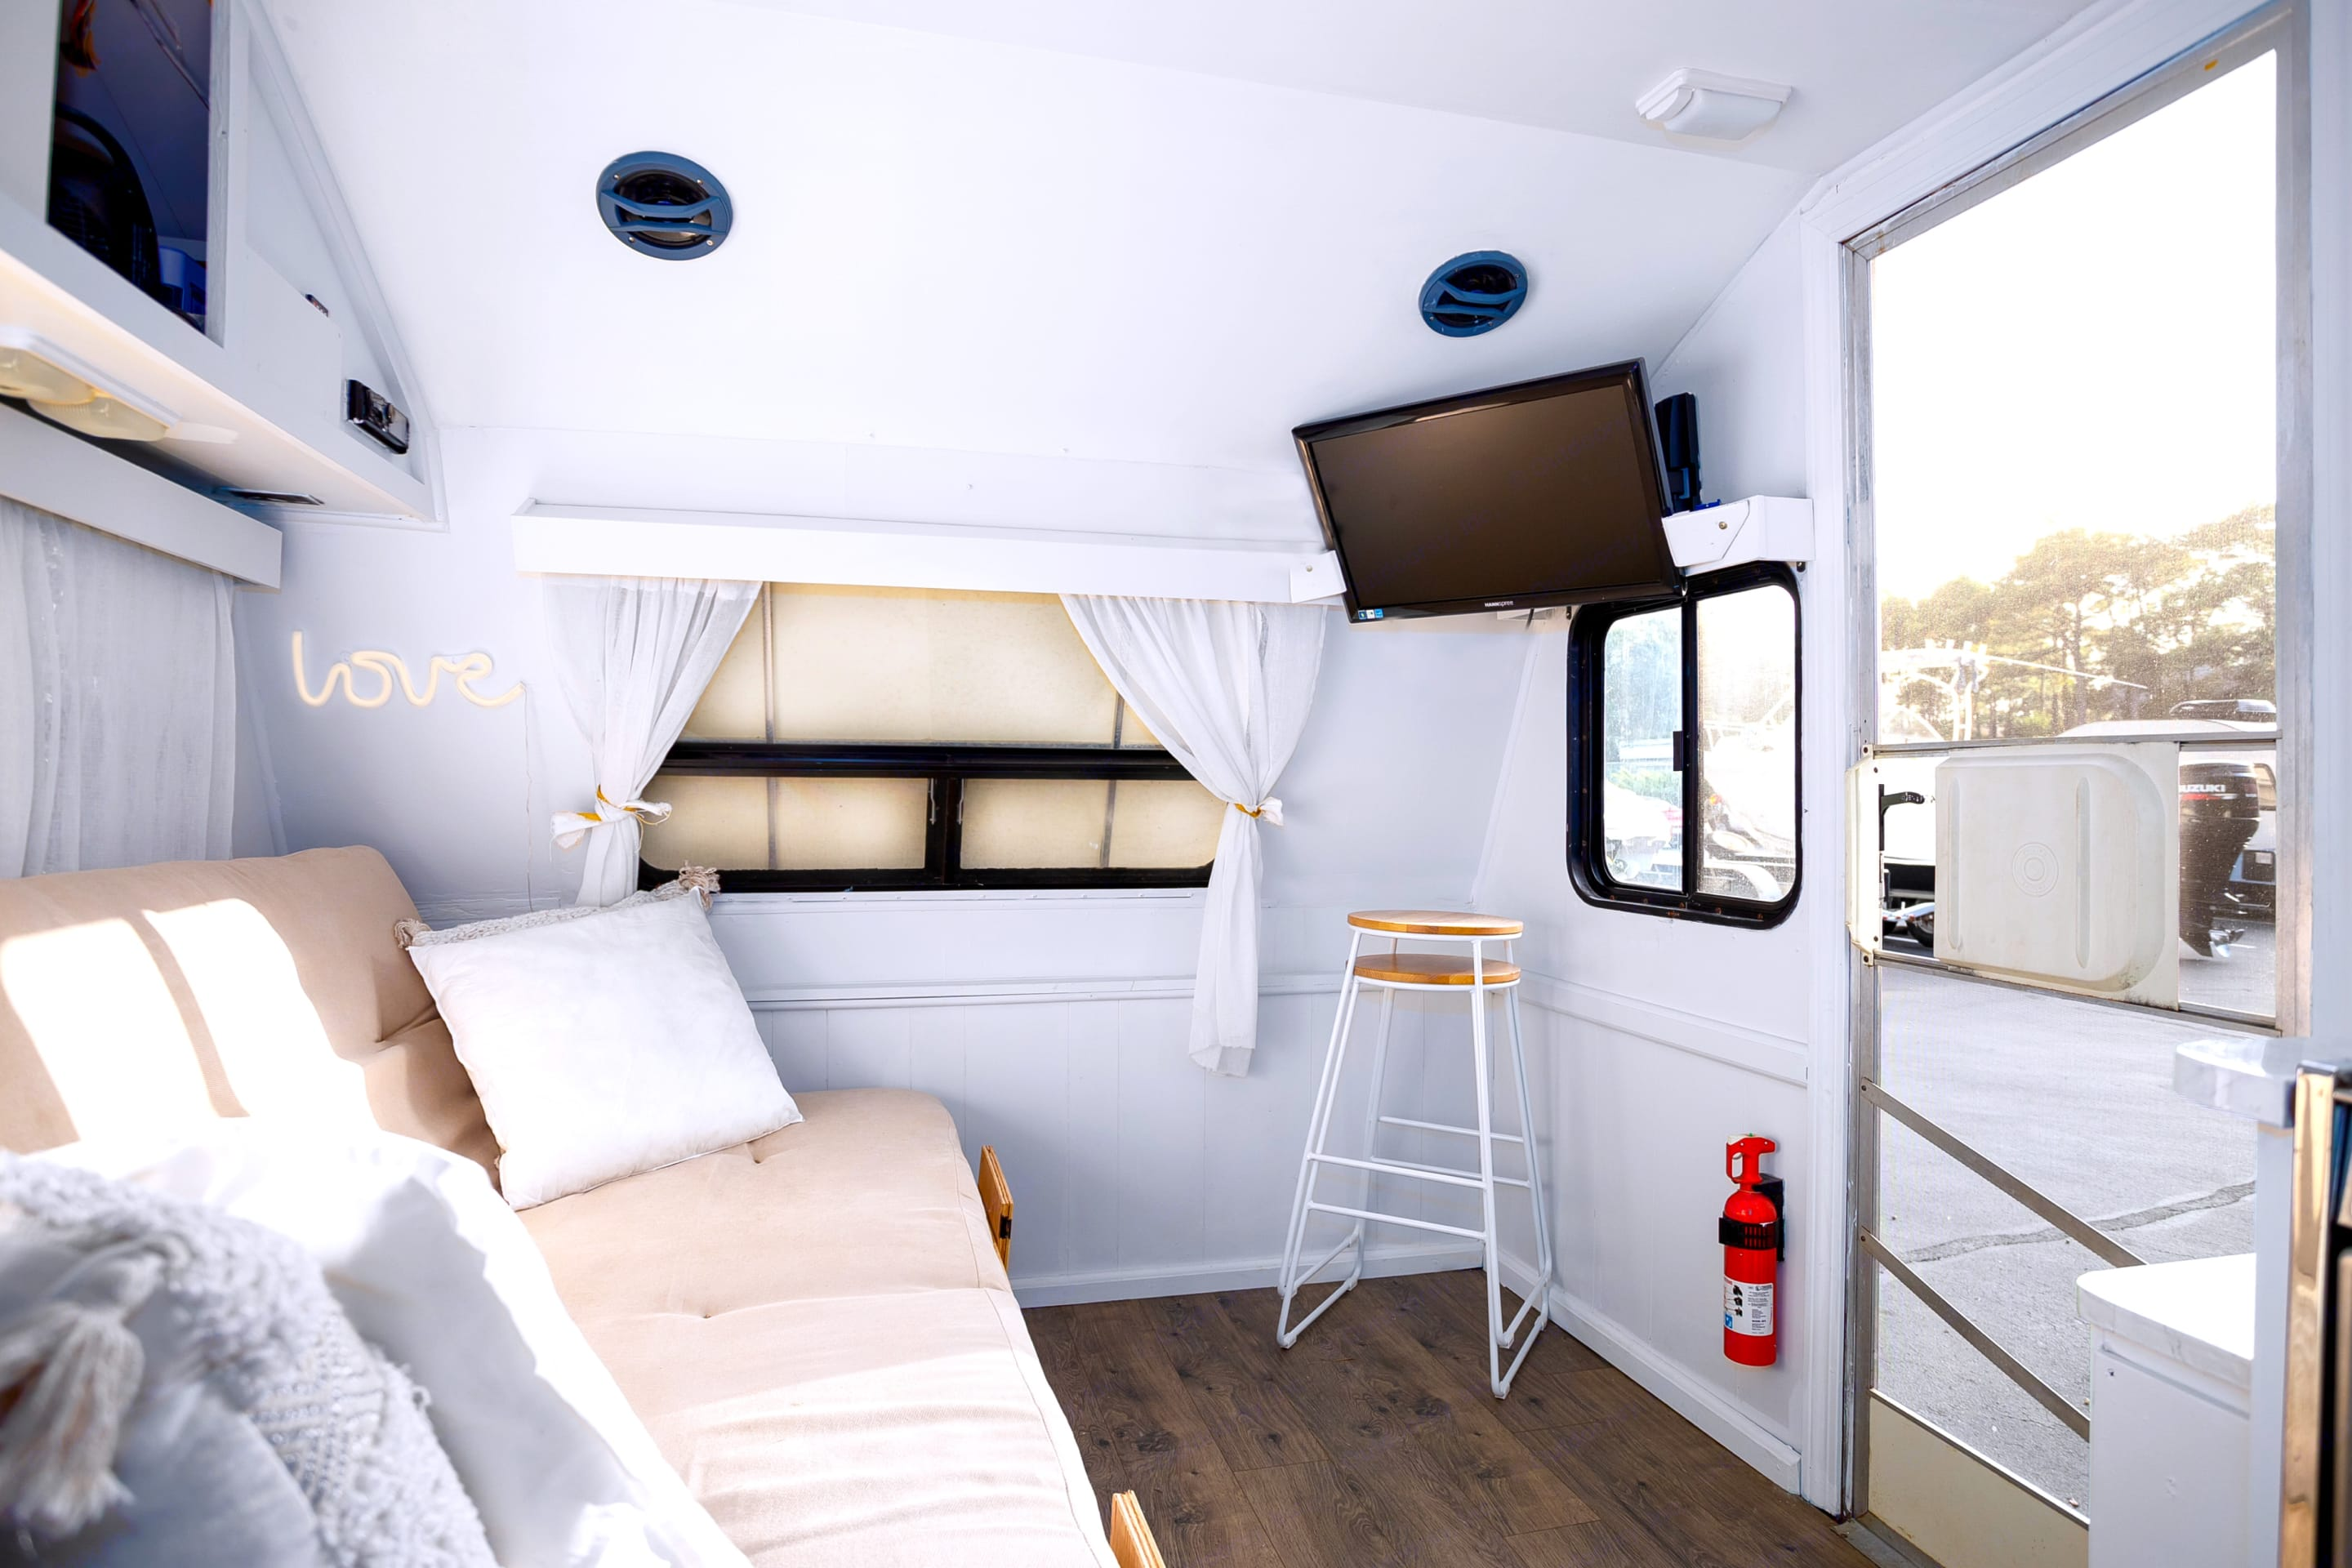 Interior, couch folds out to Full futon bed. Fleetwood Prowler 1992